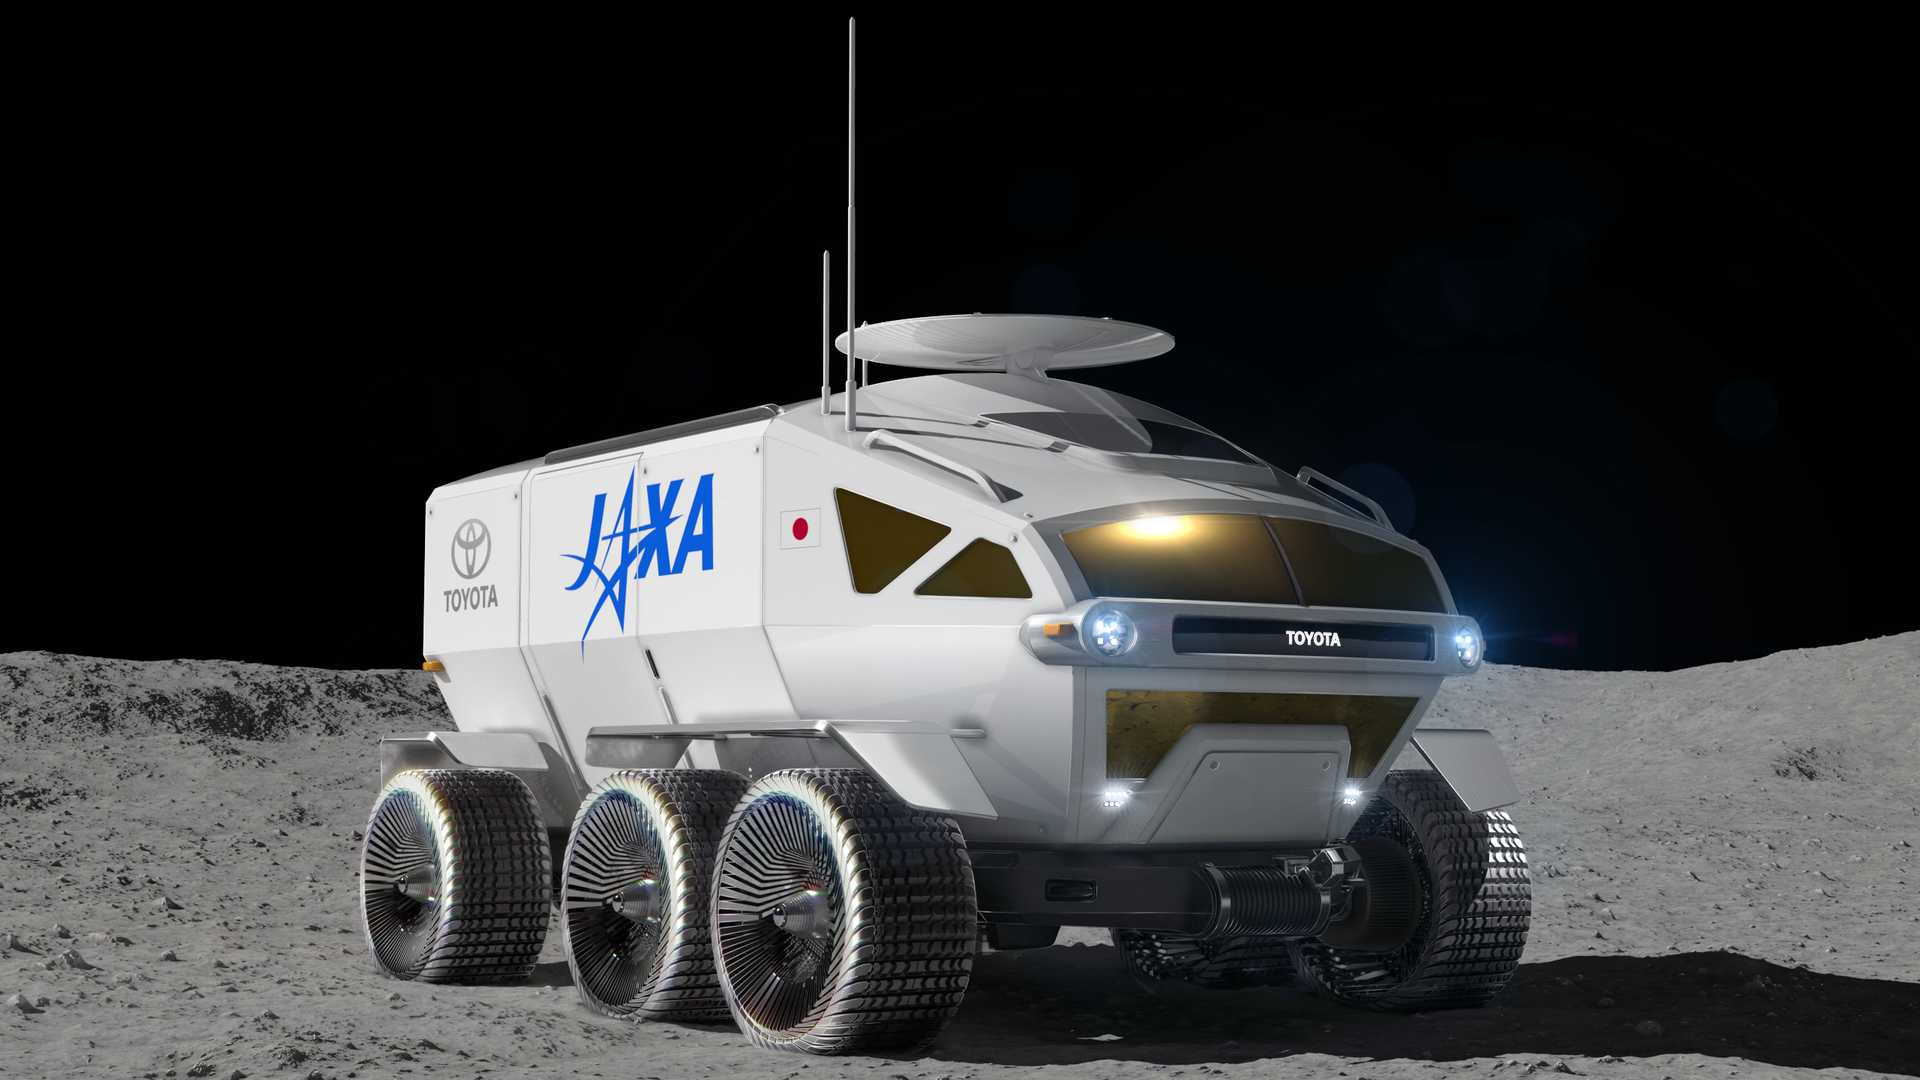 Toyota is creating a crewed lunar rover for Japan's space agency